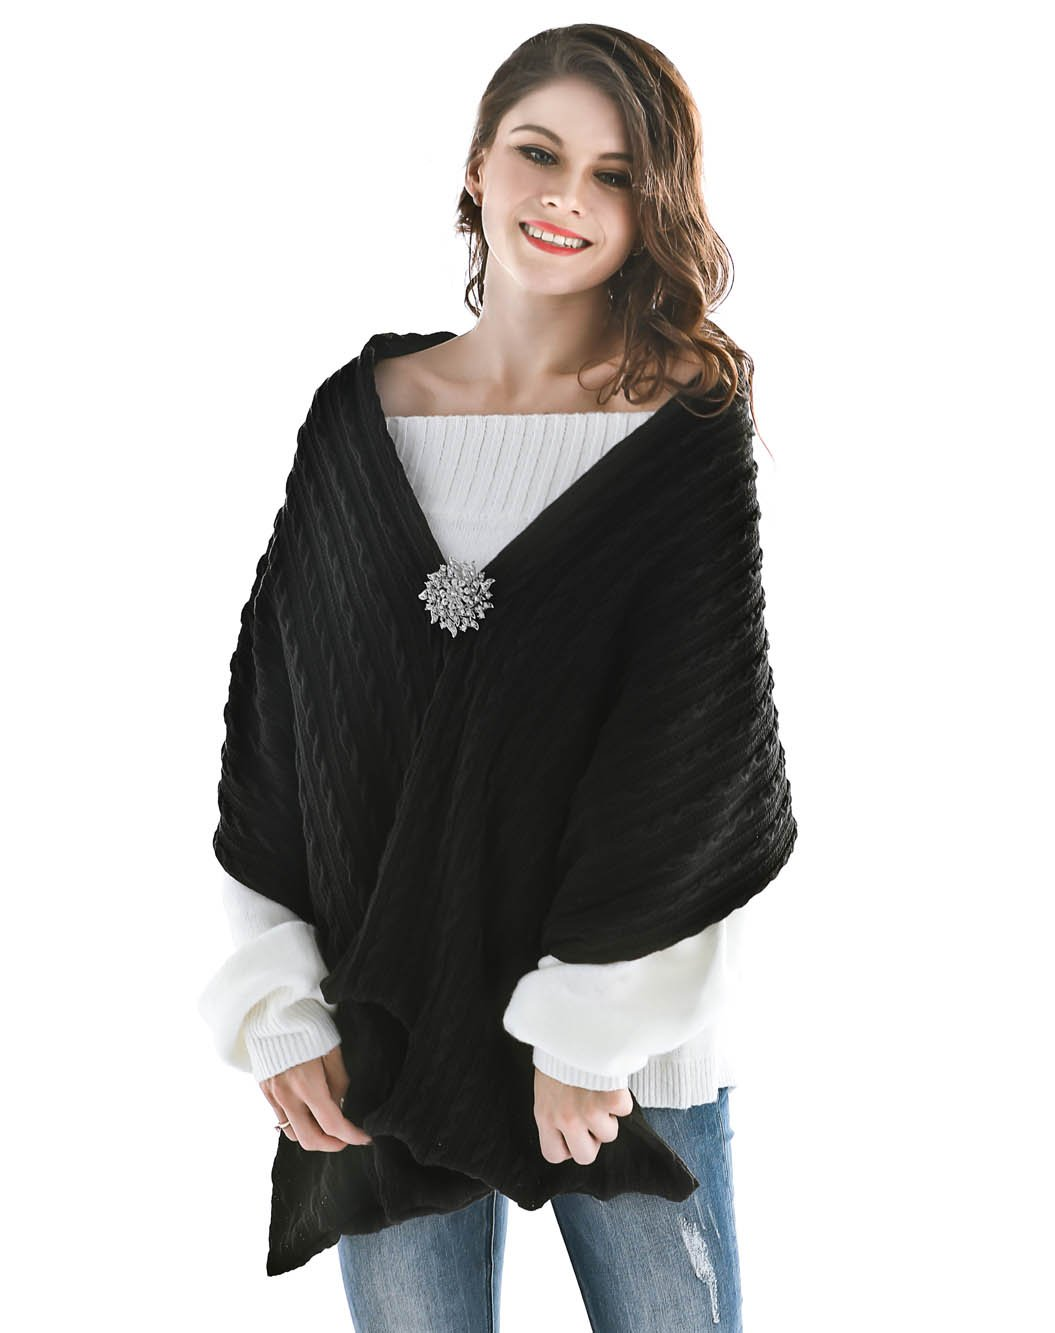 Aukmla Women's Knitted Scarf Pashminas Shawls and scarves Poncho with Brooch (Black)